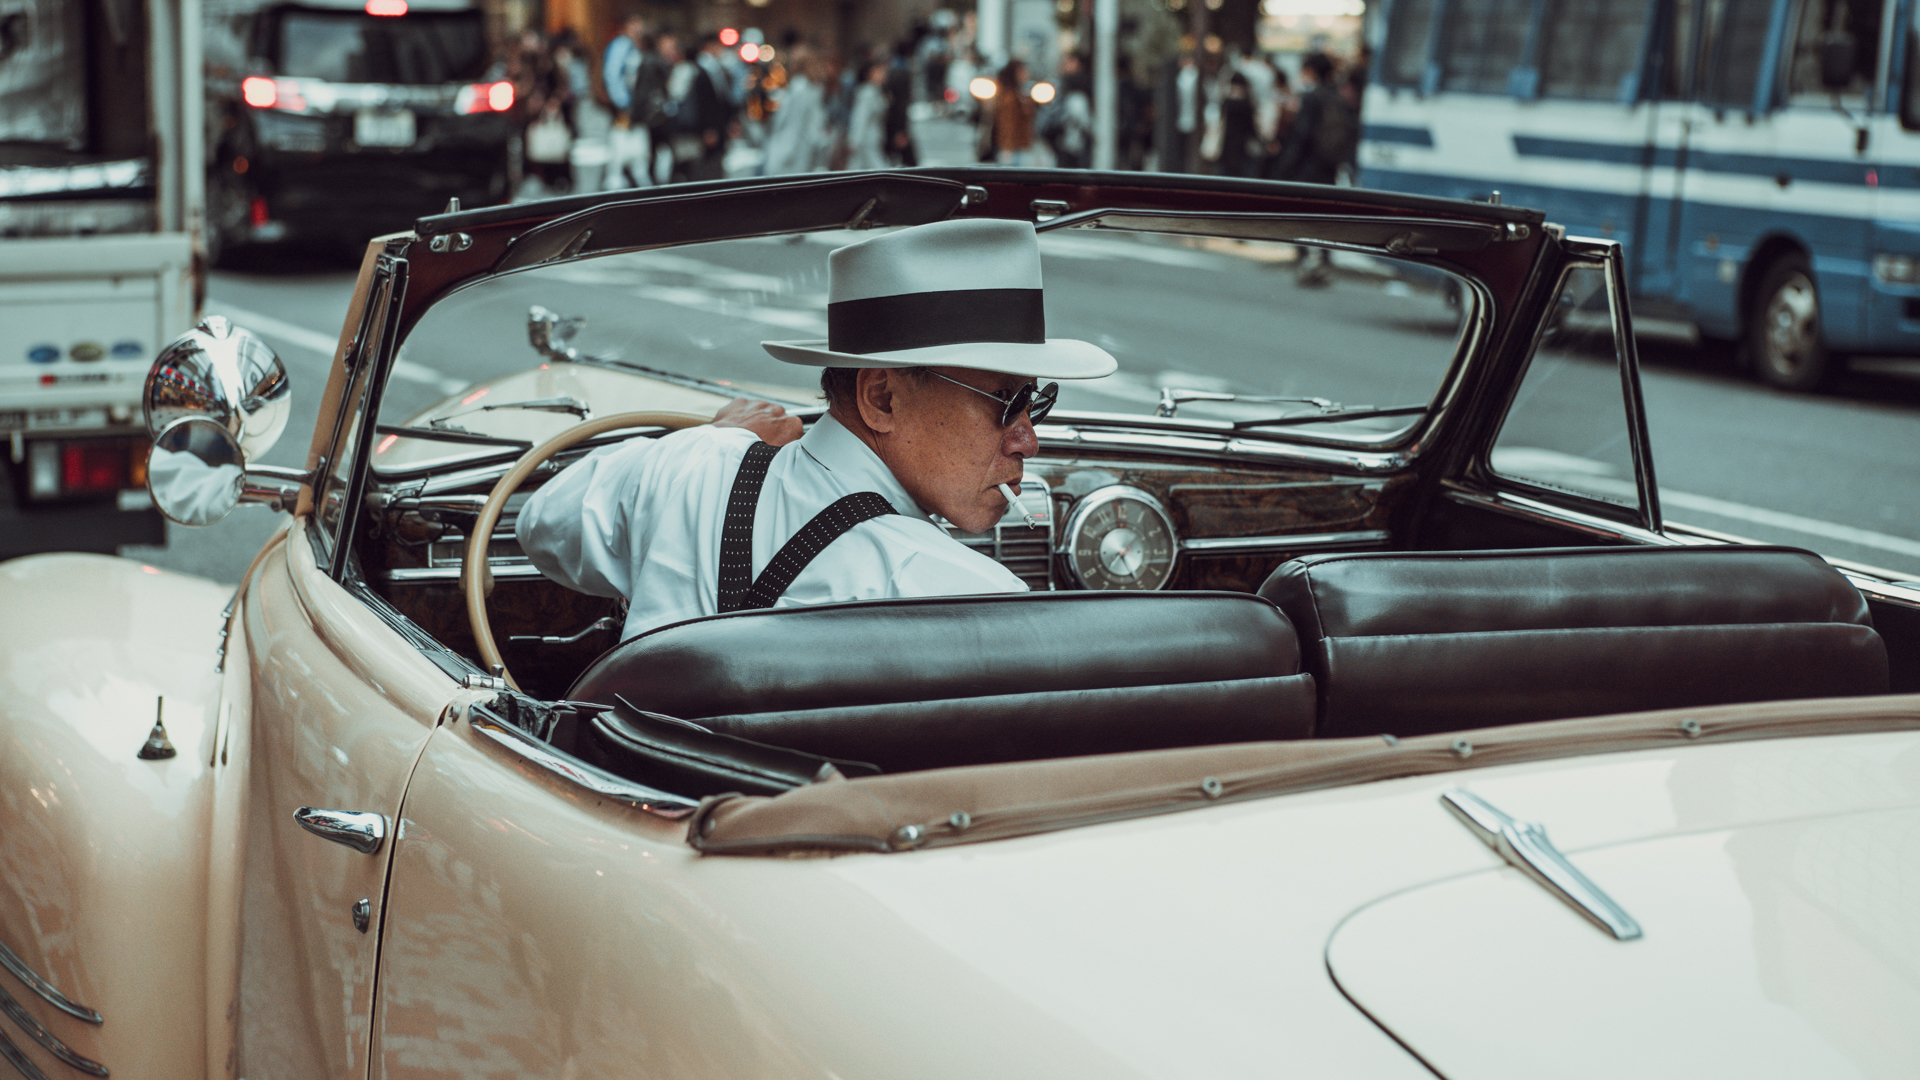 Photojournalism: Cinematic Tokyo by Stijn Hoekstra